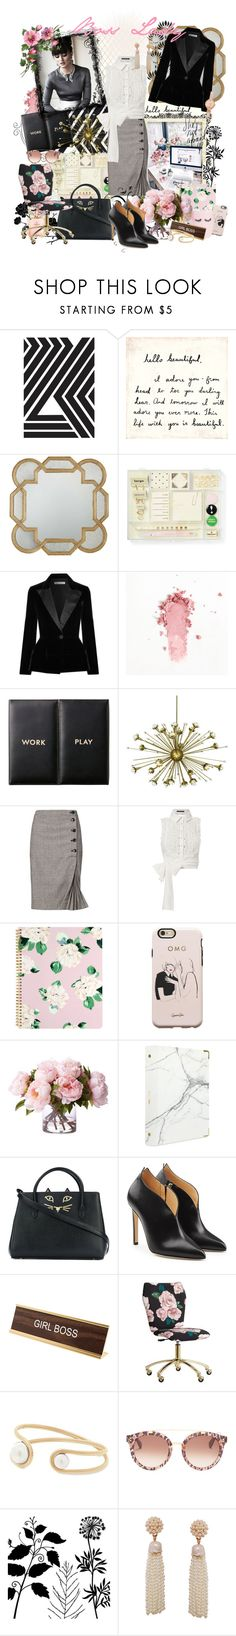 """She works hard for the money..."" by forget-me-not ❤ liked on Polyvore featuring Kate Spade, Oscar de la Renta, Jonathan Adler, Banana Republic, Marissa Webb, ban.do, Rifle Paper Co, russell+hazel, Charlotte Olympia and Chloe Gosselin"